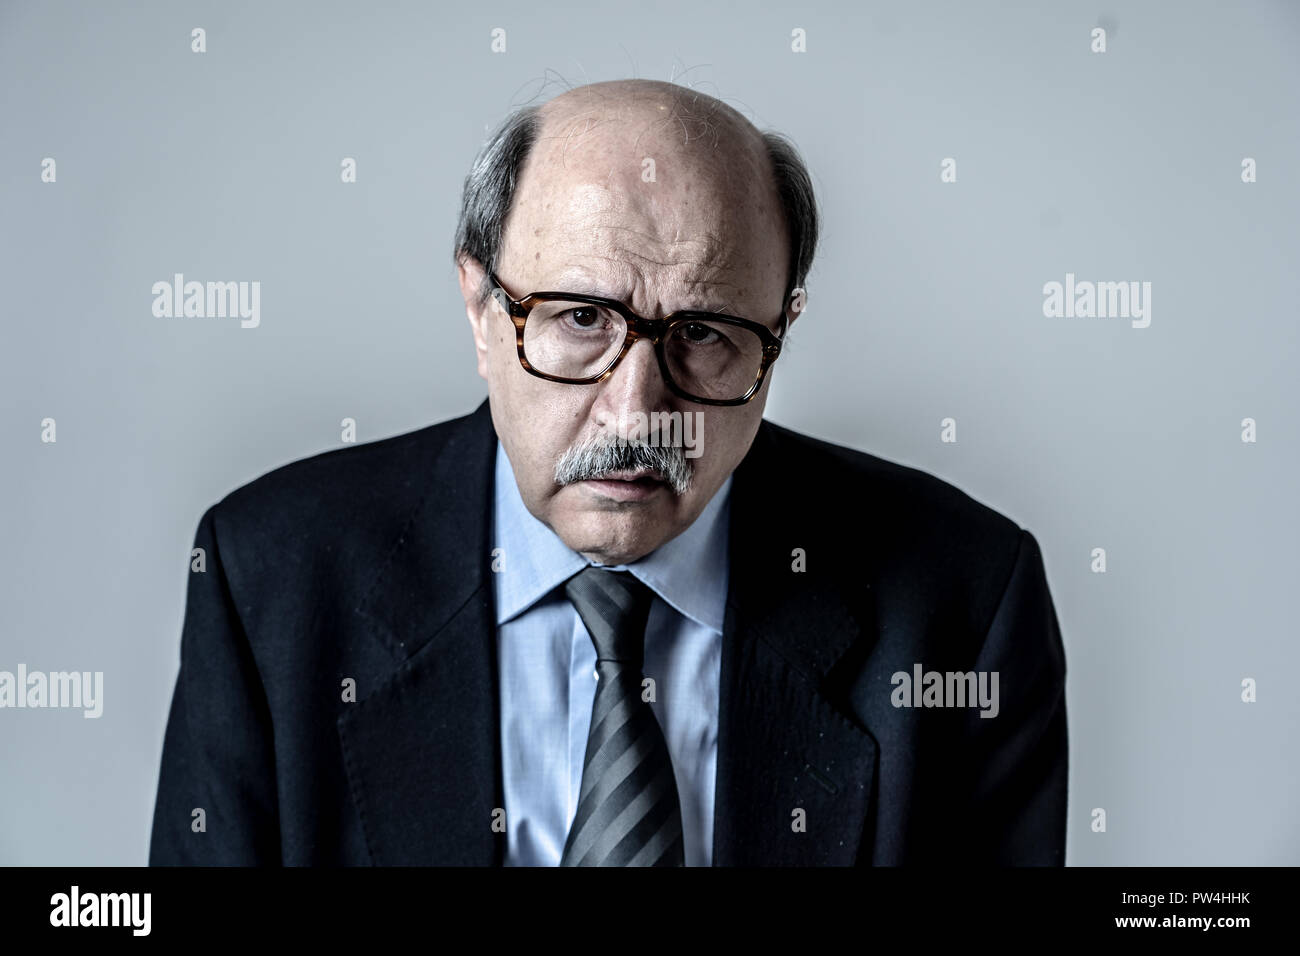 Portrait of senior mature old businessman looking sad and worried suffering pain and depression in sadness face expression Retirement and jobless conc - Stock Image